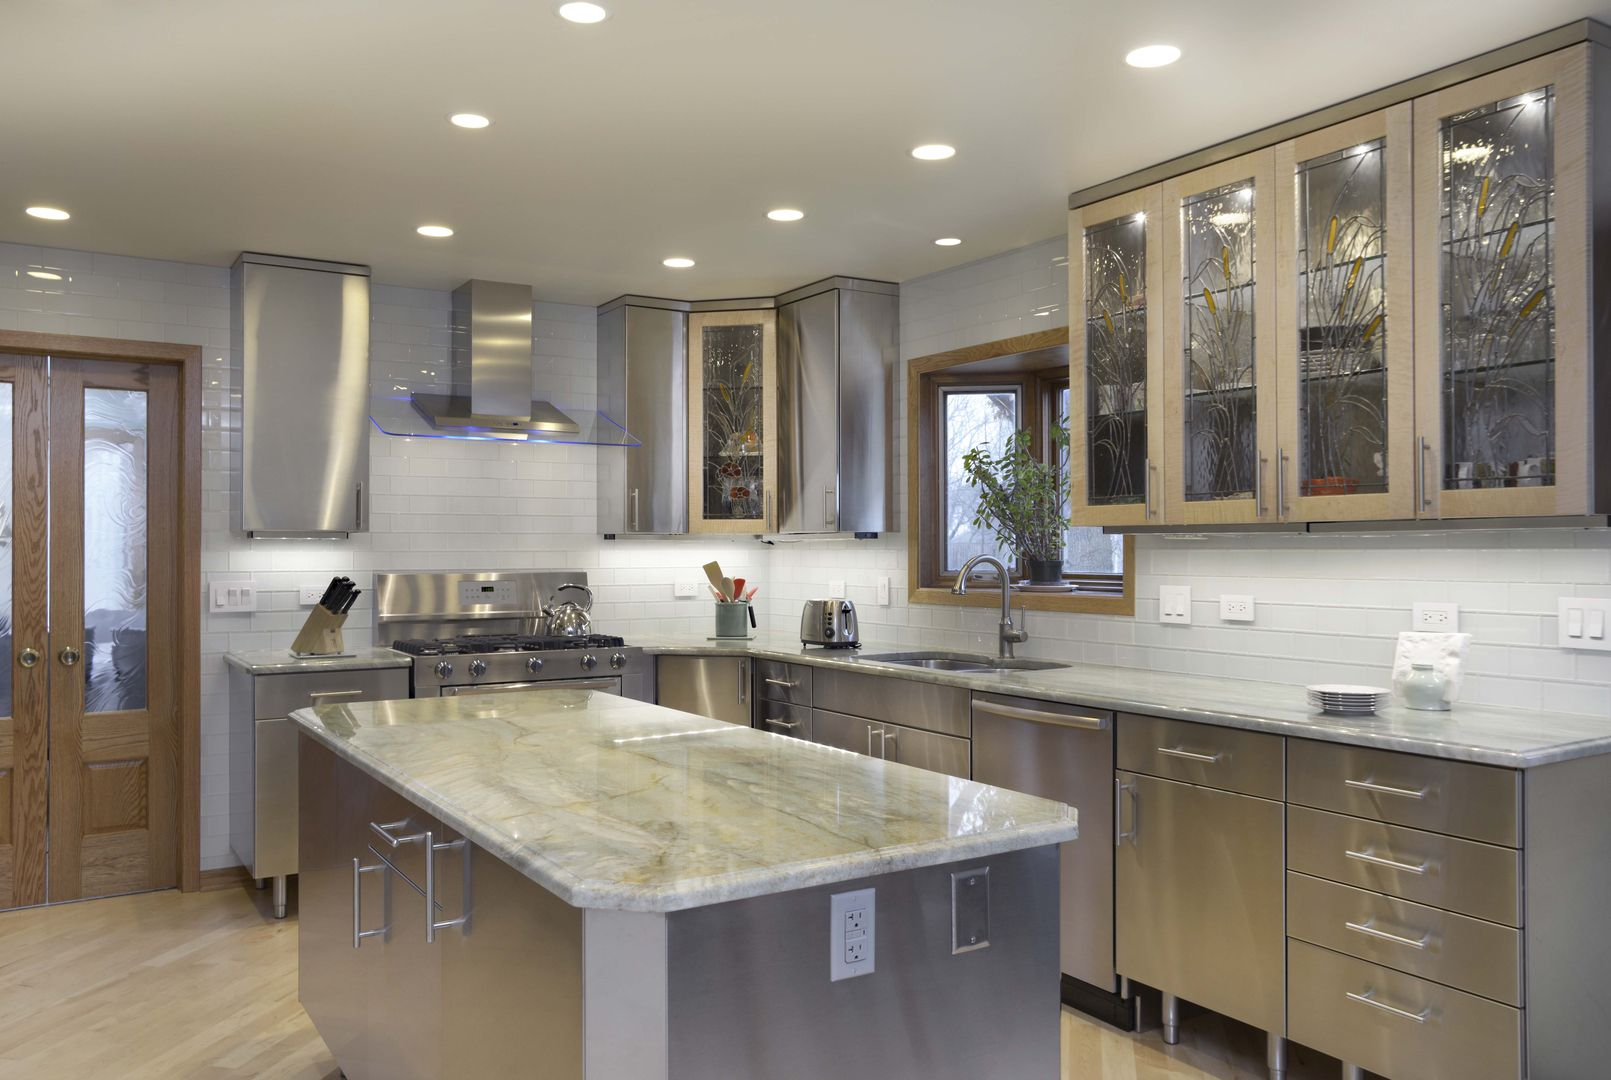 Stainless Steel Kitchens Stainless Steel Kitchen Cabinets Stainless Steel Countertops M Metal Kitchen Cabinets Kitchen Design Trends Steel Kitchen Cabinets